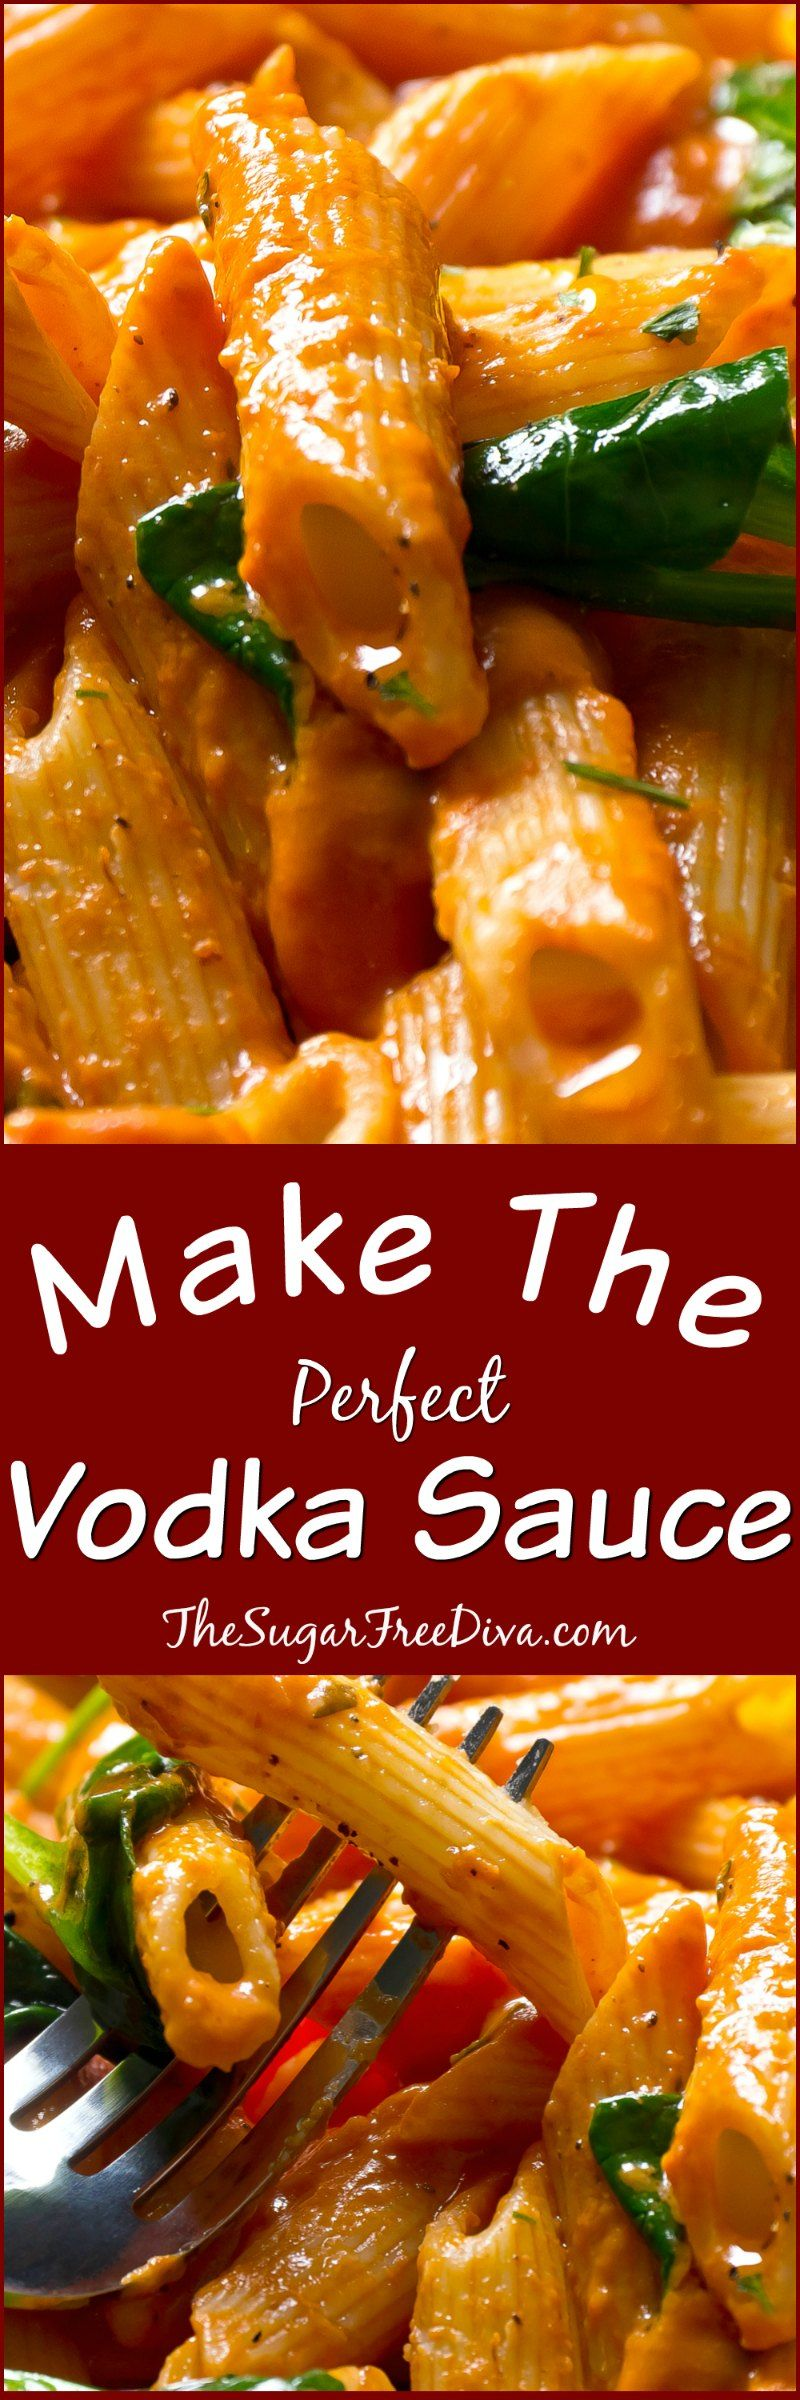 Make the perfect vodka sauce this is so easy to make and